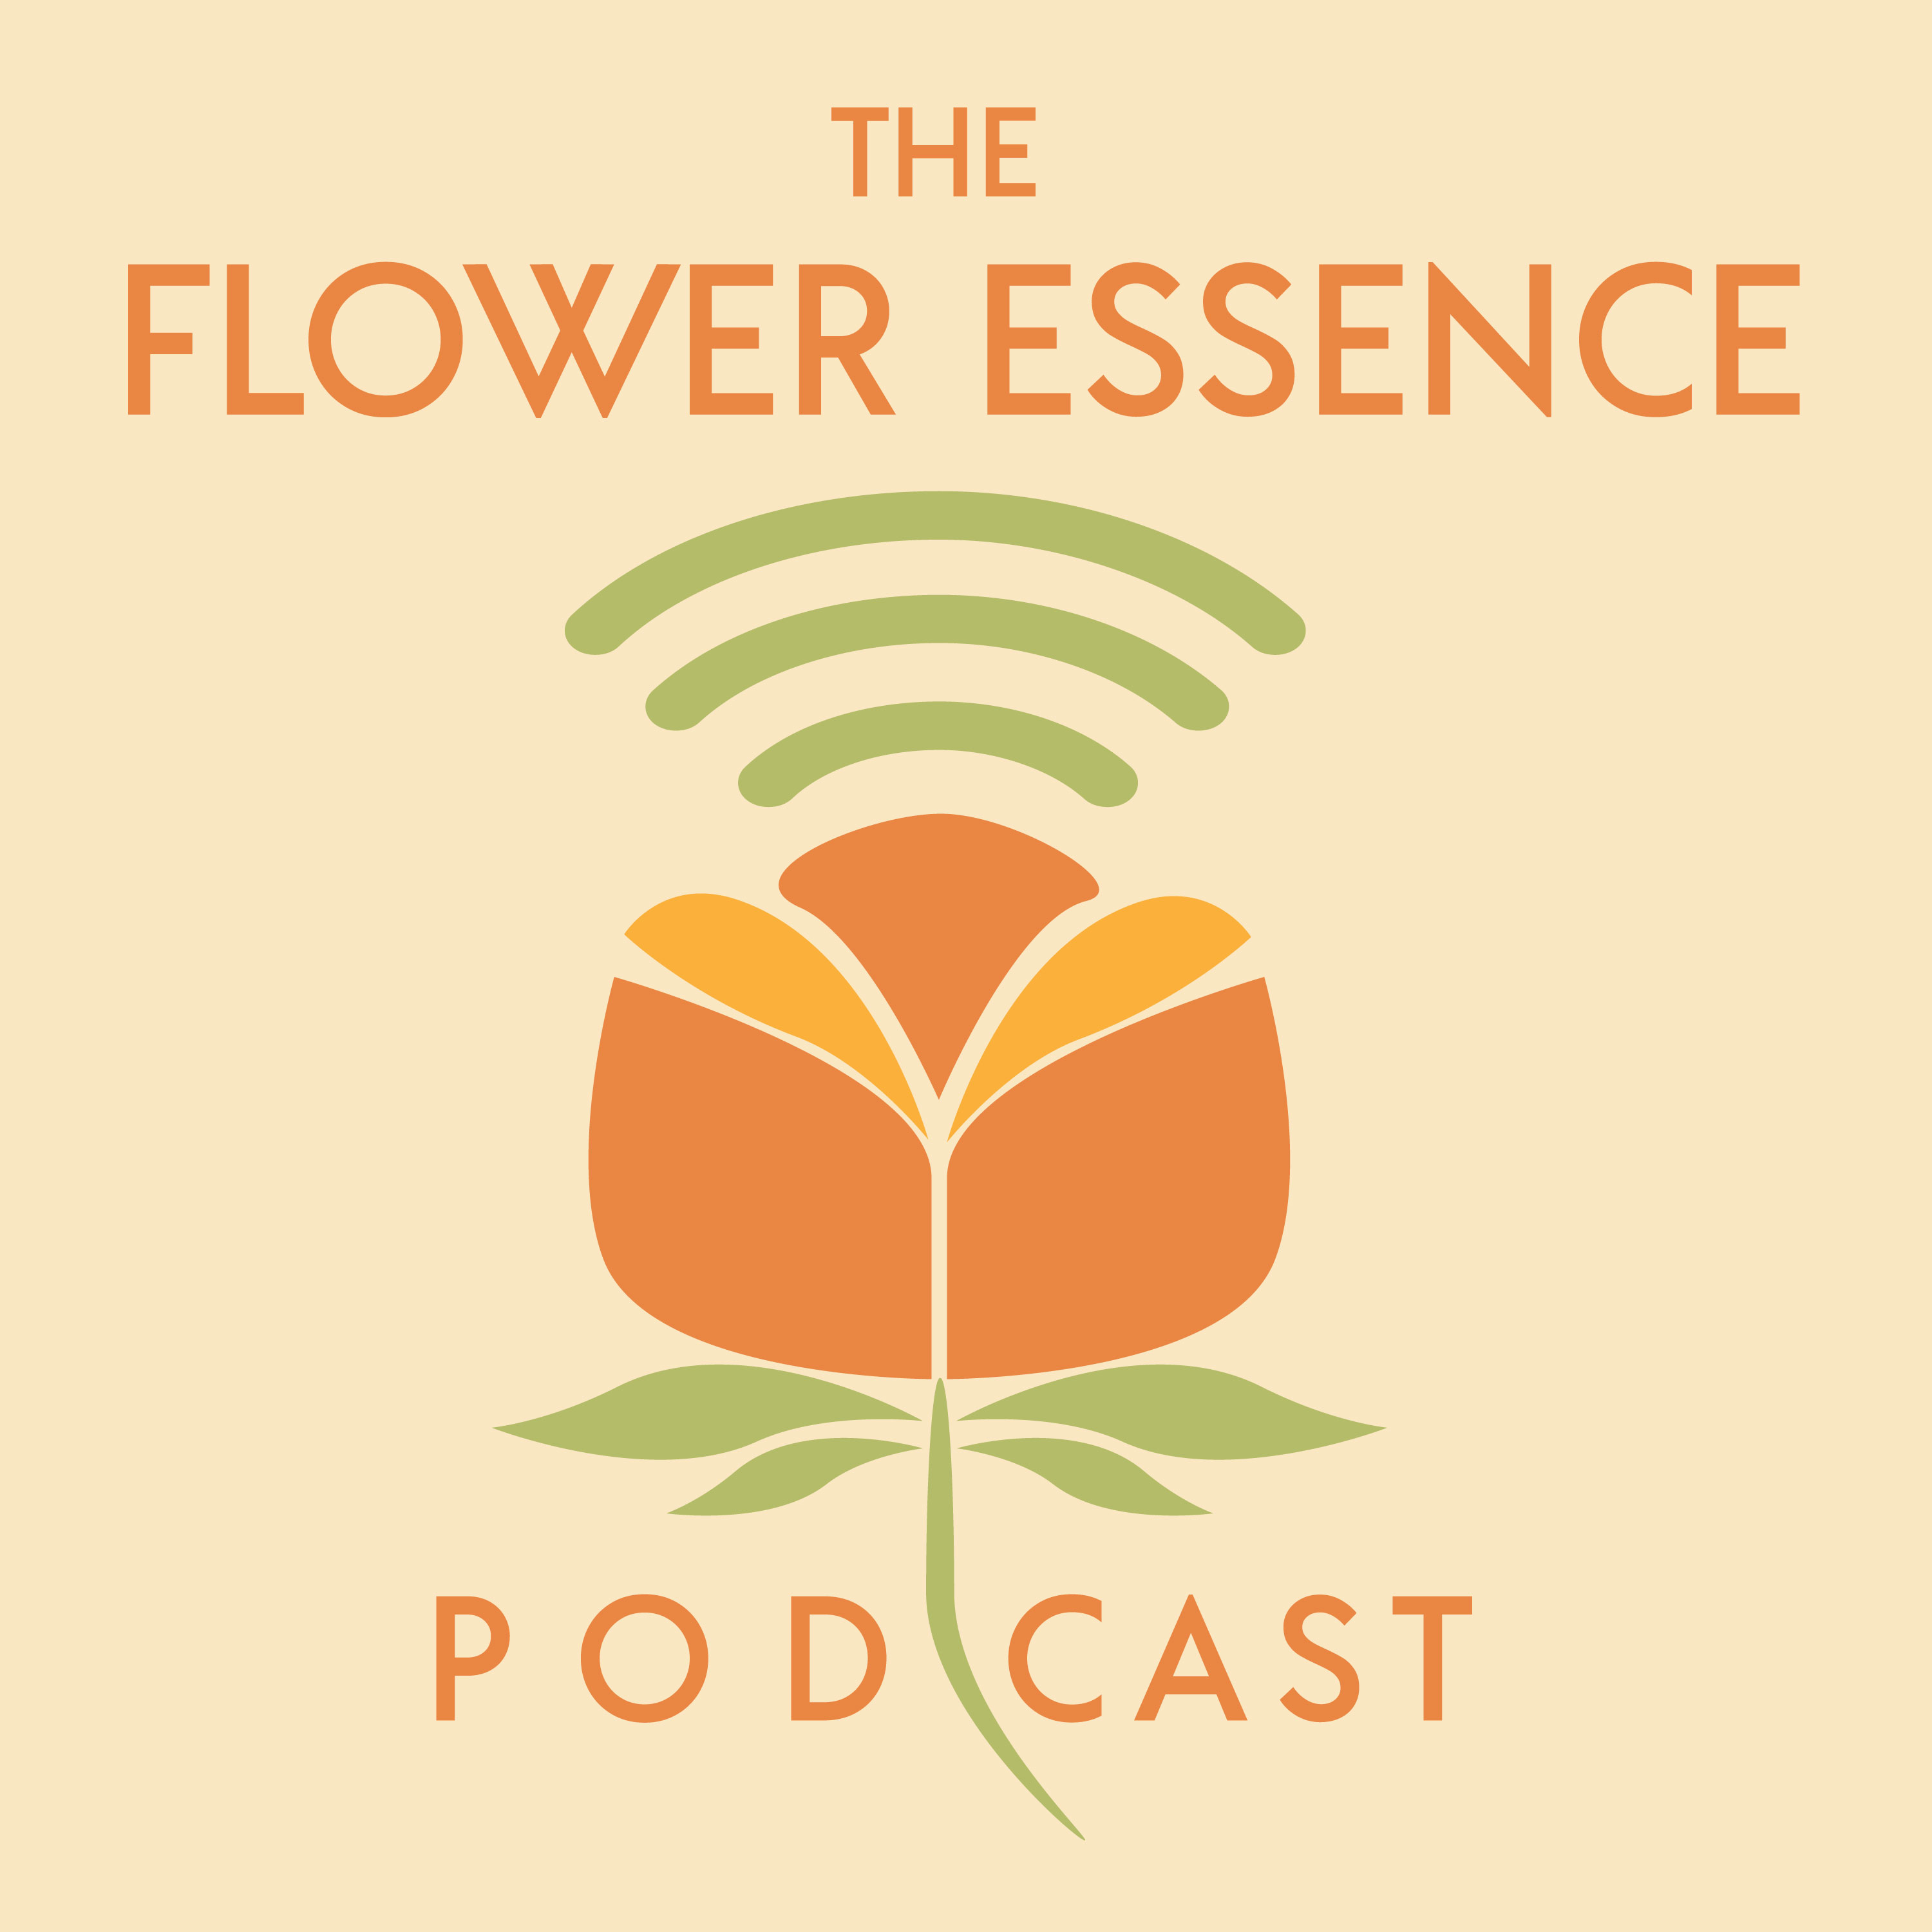 The Flower Essence Podcast show art